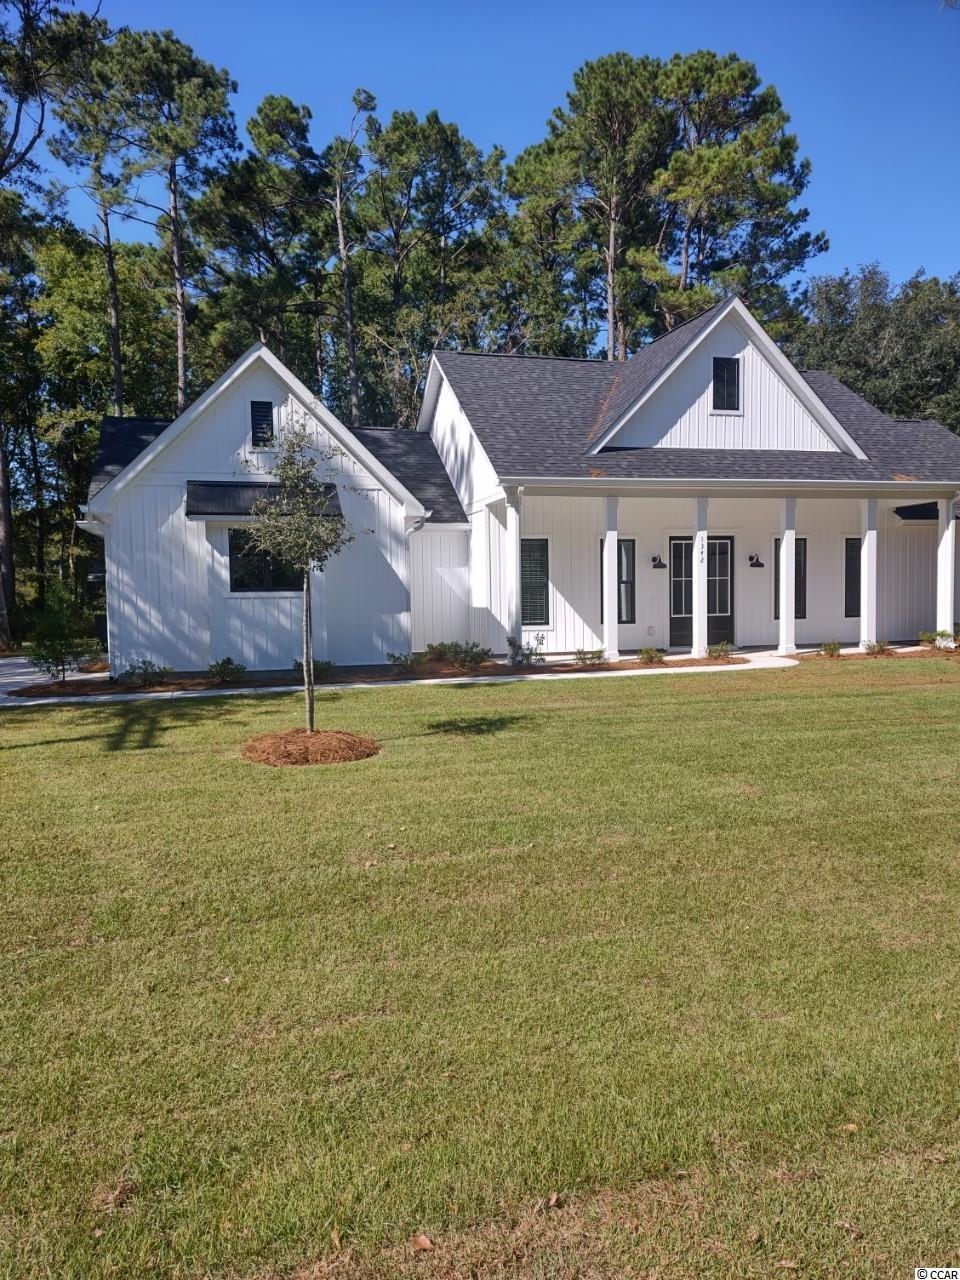 Beautiful 4 bedroom 2.5 bath open concept farm house located within the prestigious Litchfield Country Club.